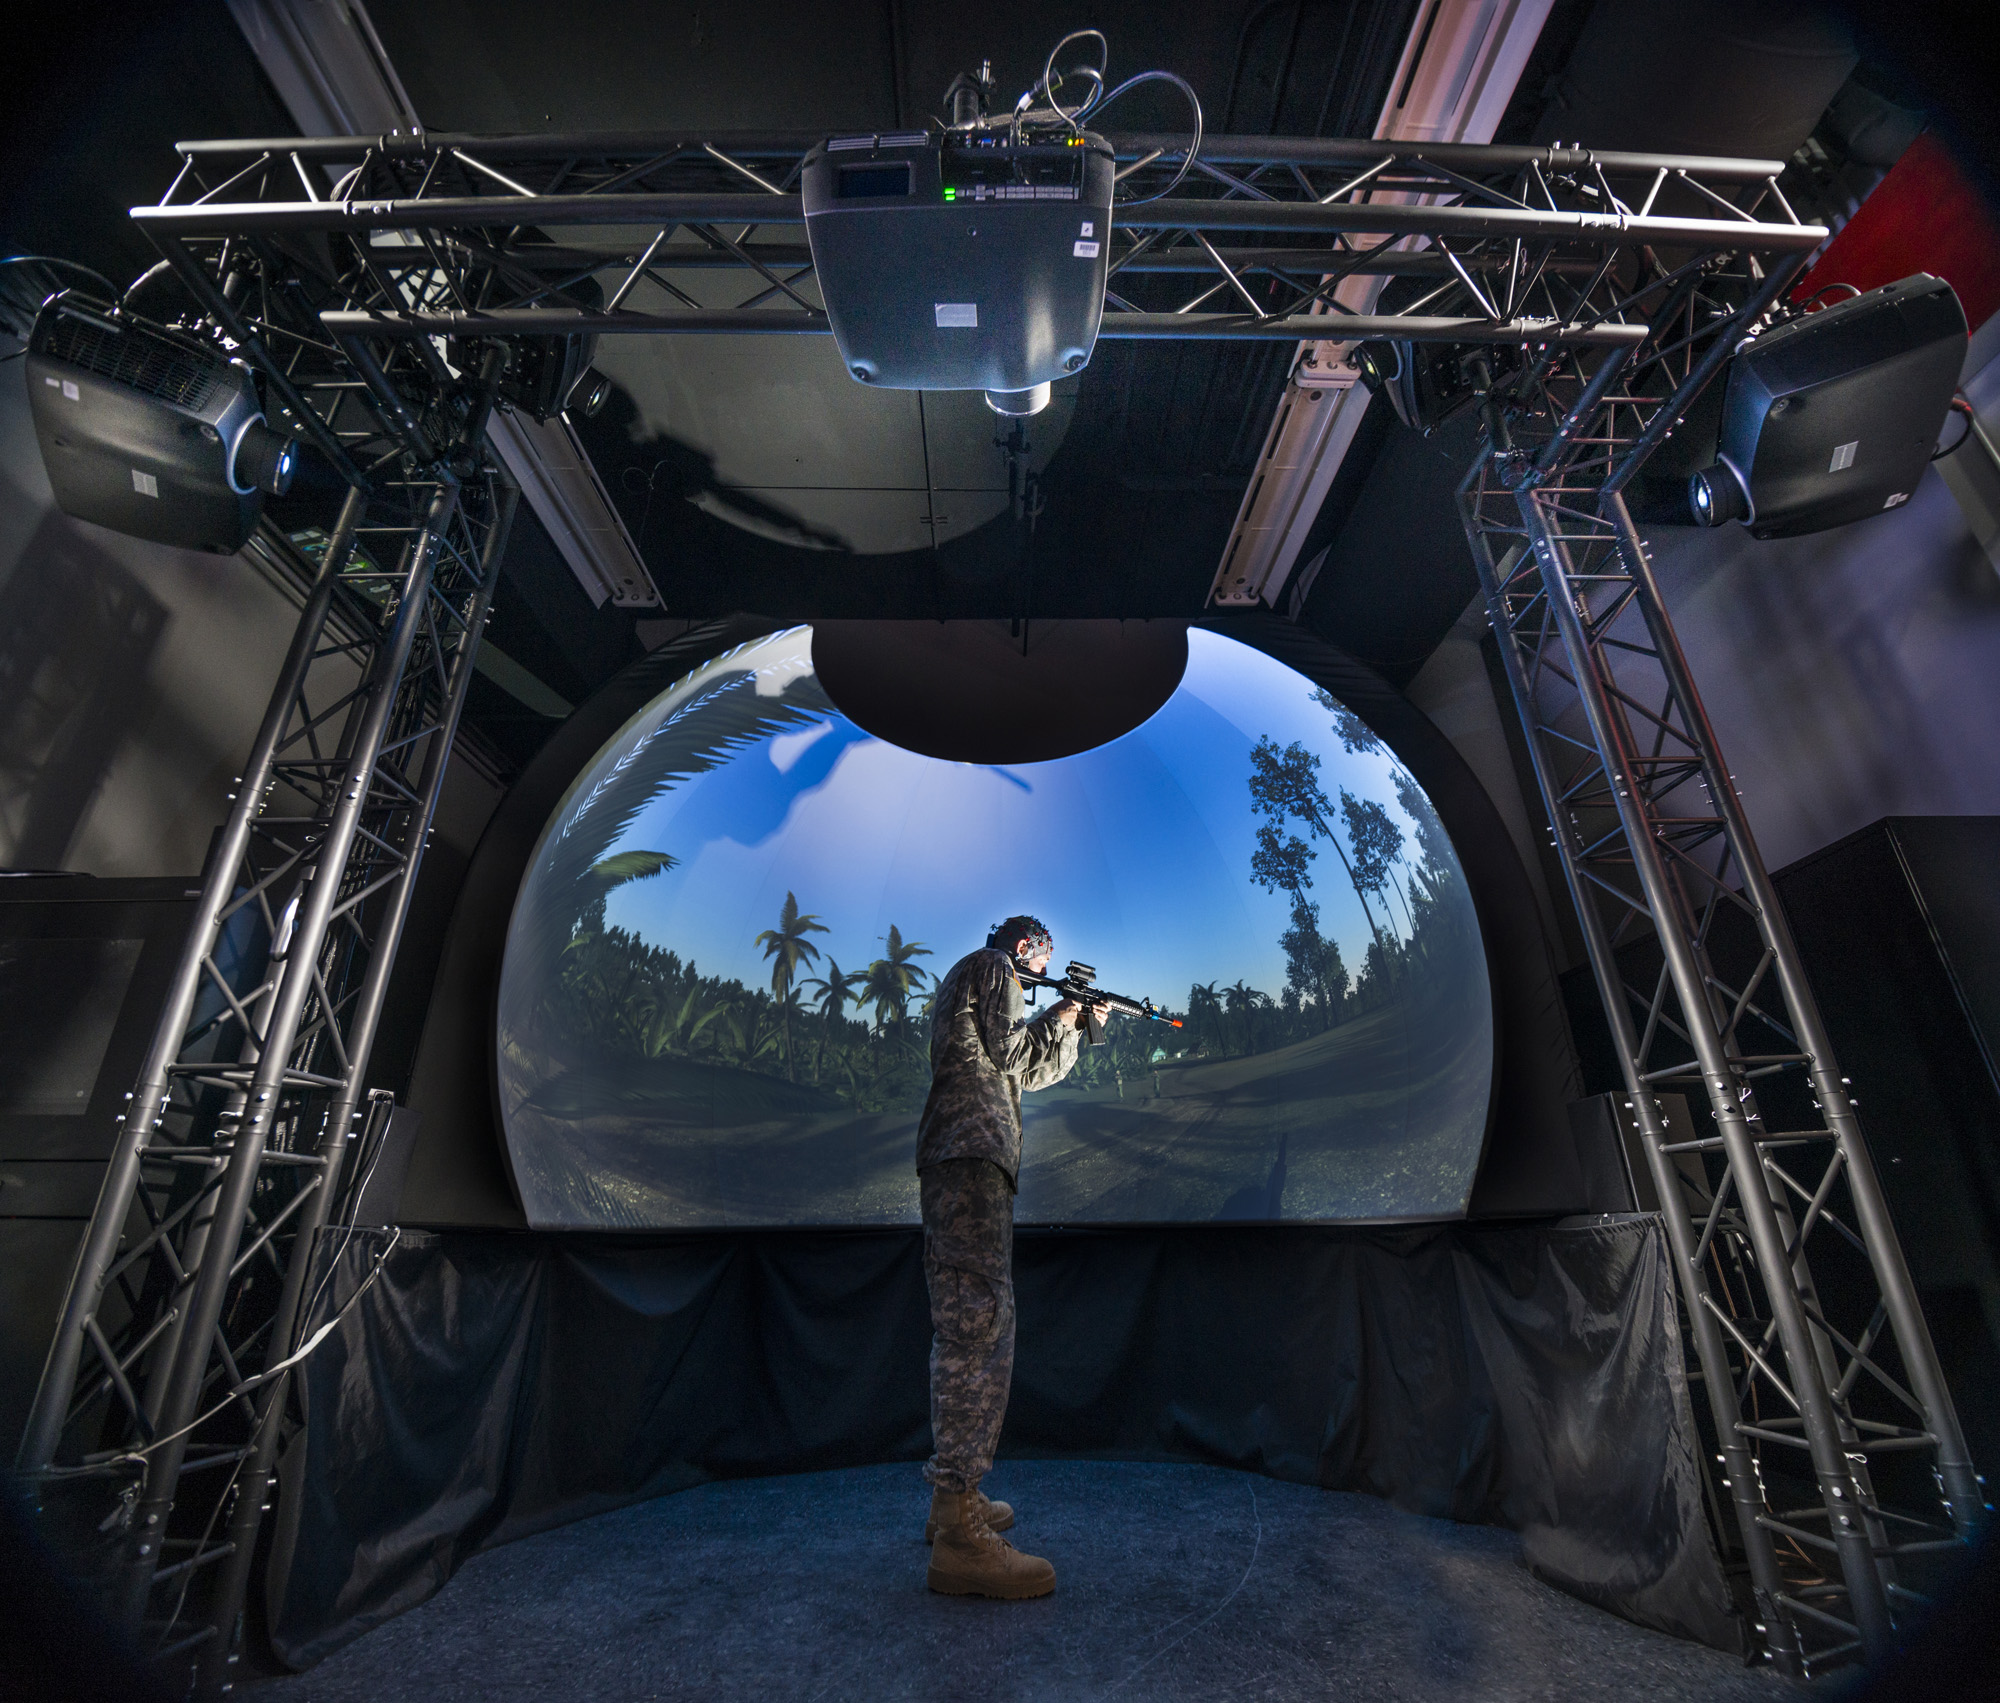 This virtual reality dome at the Natick Soldier Research, Development and Engineering Center (NSRDEC) allows researchers to assess environmental and equipment impacts on Soldier cognition, including decision-making, spatial memory and finding their way. The research is part of the broader mission of the Center for Applied Brain and Cognitive Sciences, created jointly by NSRDEC and the Tufts University School of Engineering, which will examine Soldier interactions with autonomous robotic platforms to augment and optimize human cognition, mood and physical capabilities. (Photo by David Kamm, U.S. Army Research, Development and Engineering Command)